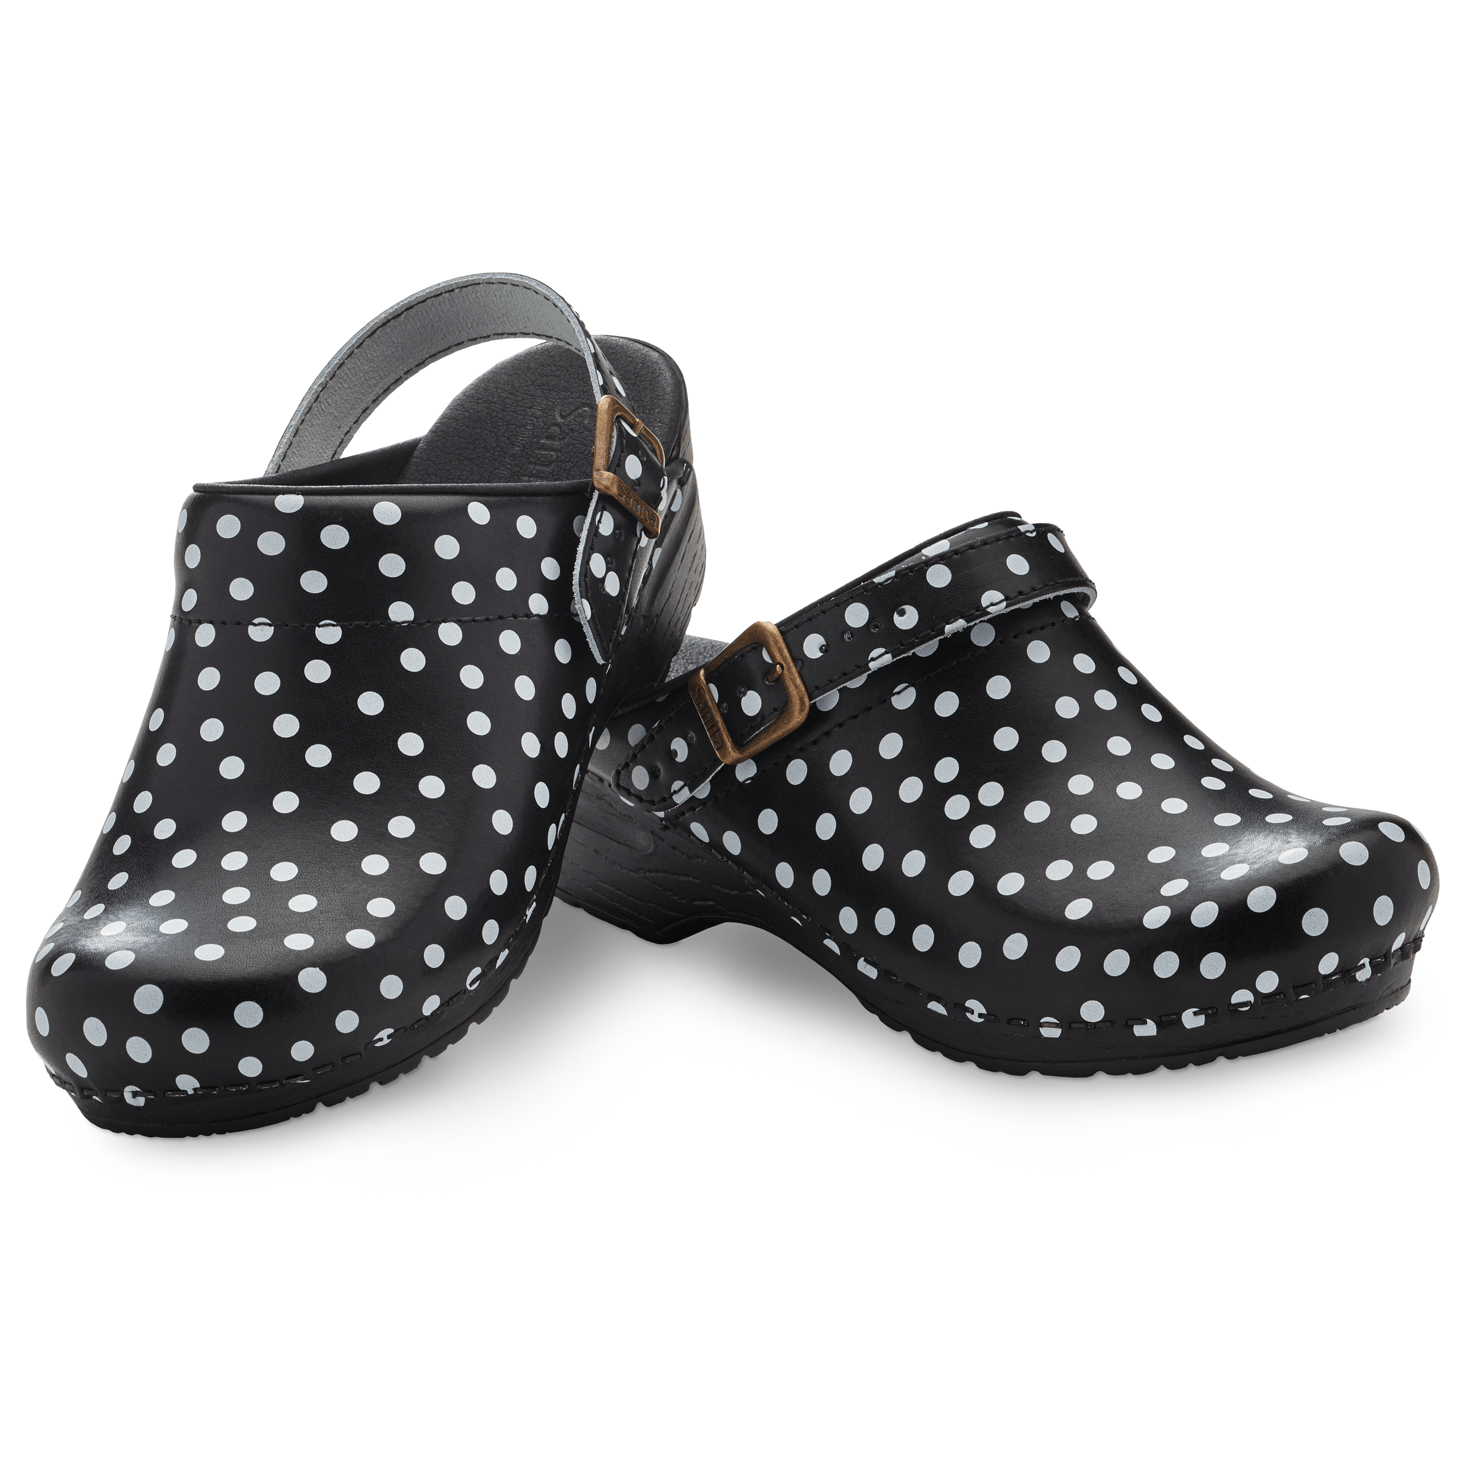 Sanita Estelle Women's Open Back Clog in Polkadot/Black